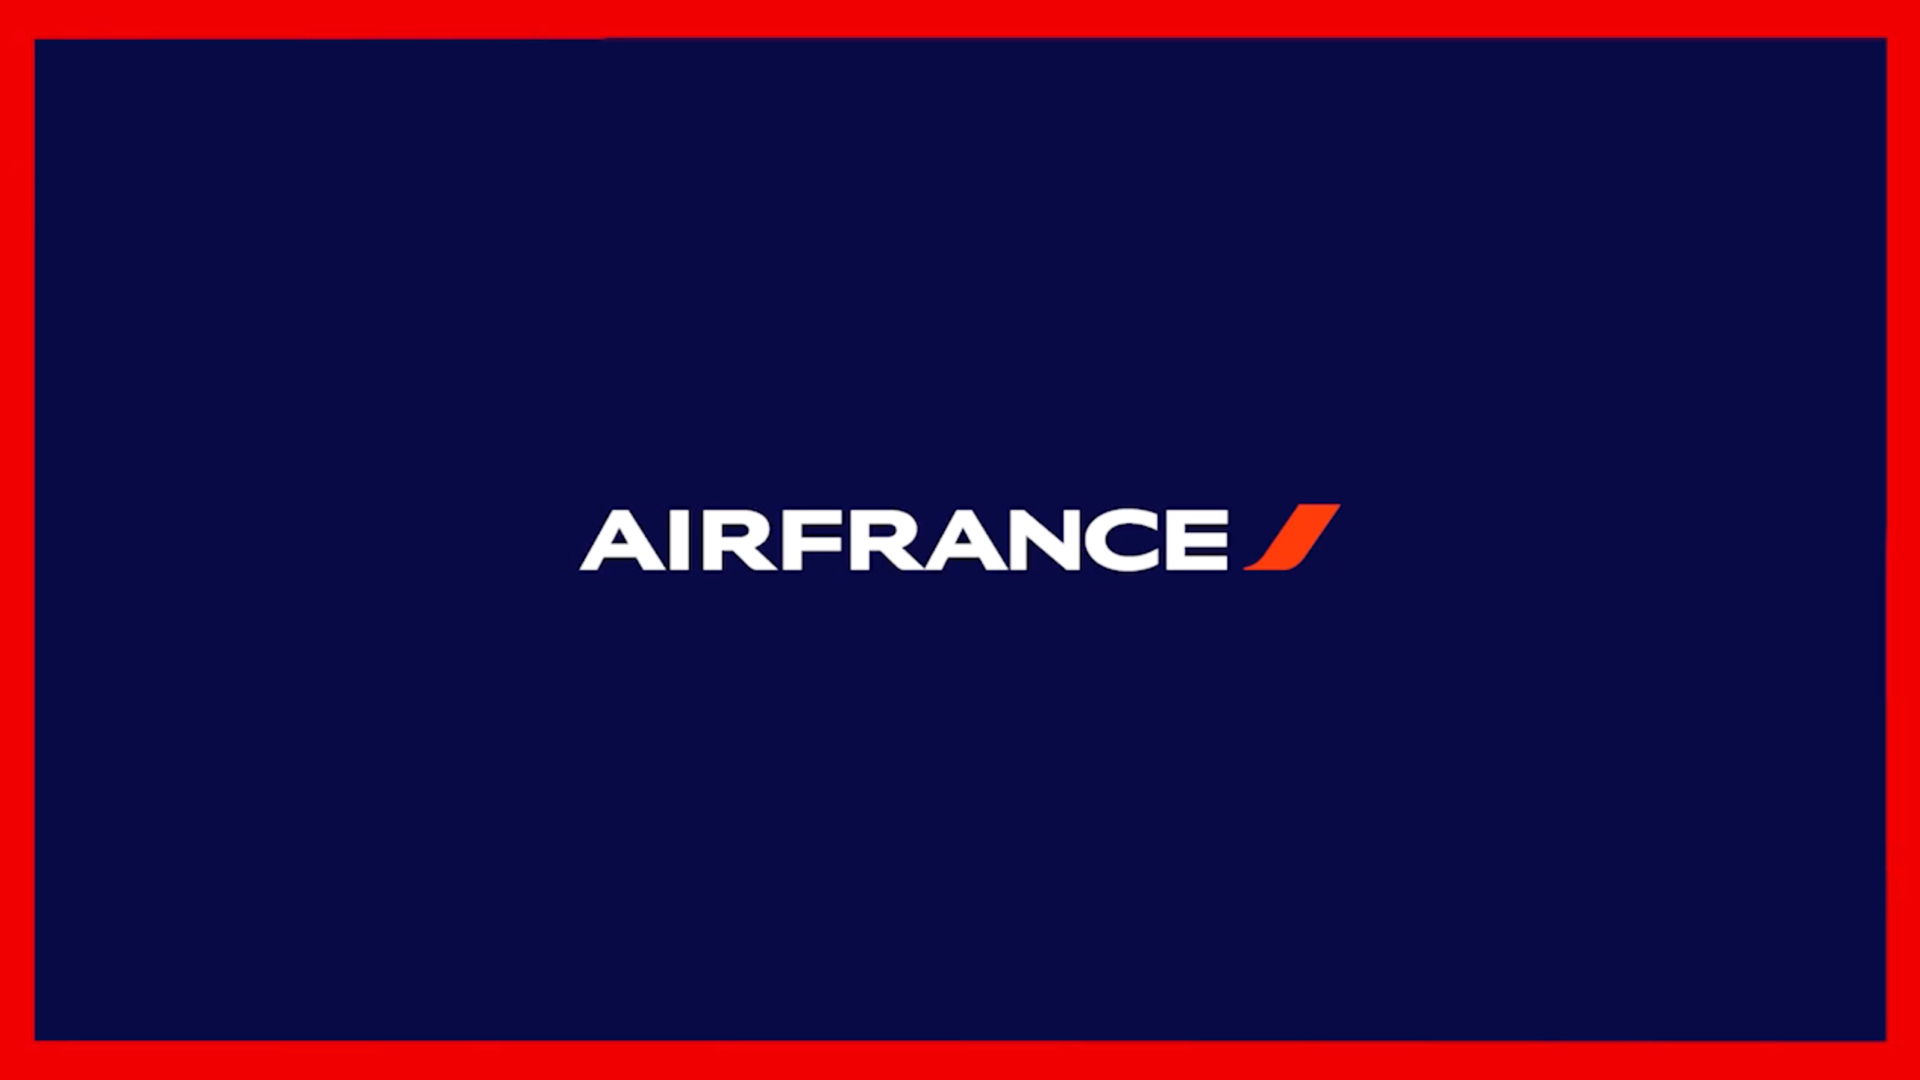 Air France,All,Digital Reinvention Practice,Global Logistics Industry,Information & Data Science Industry,Organization & Human Capital Practice,Pandemic Response,Performance Improvement Practice,Real Estate Development Industry,Restructuring,Revenue Optimization,Safety & Security,Travel & Transportation Industry